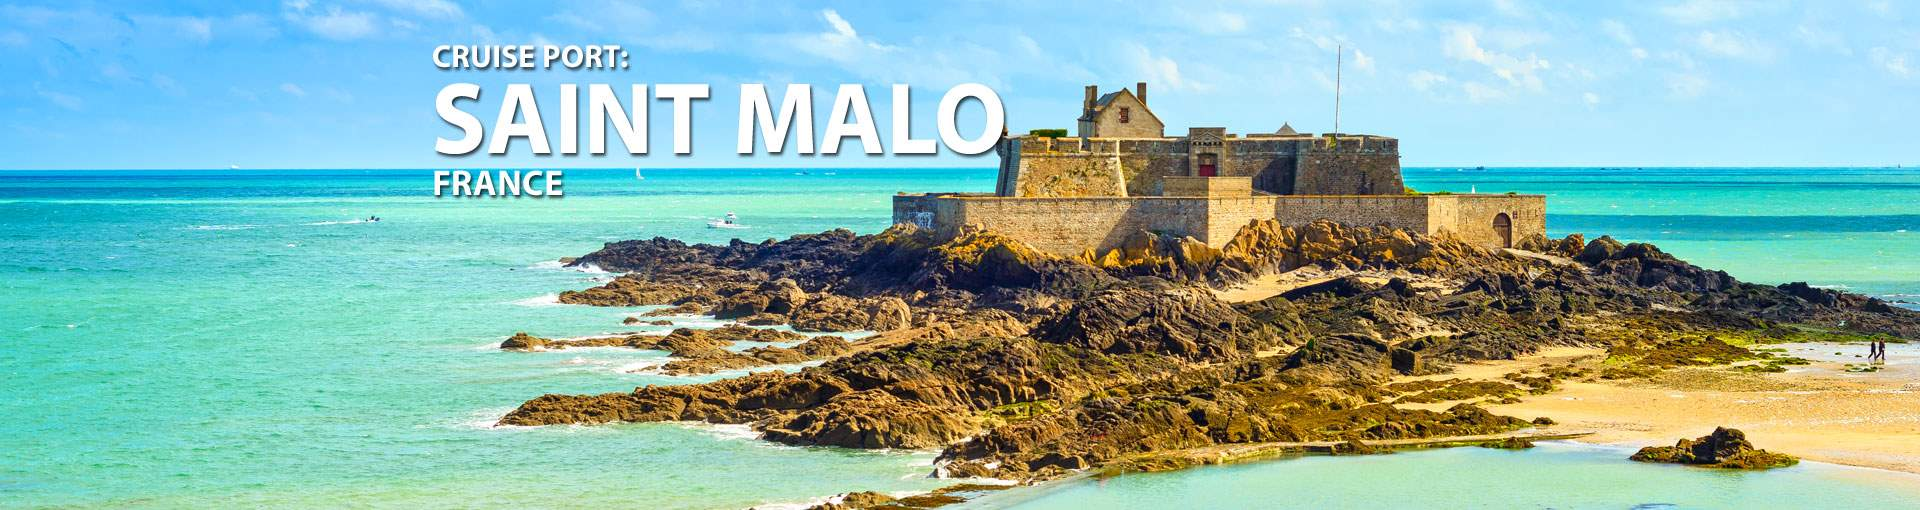 Cruises to Saint Malo, France